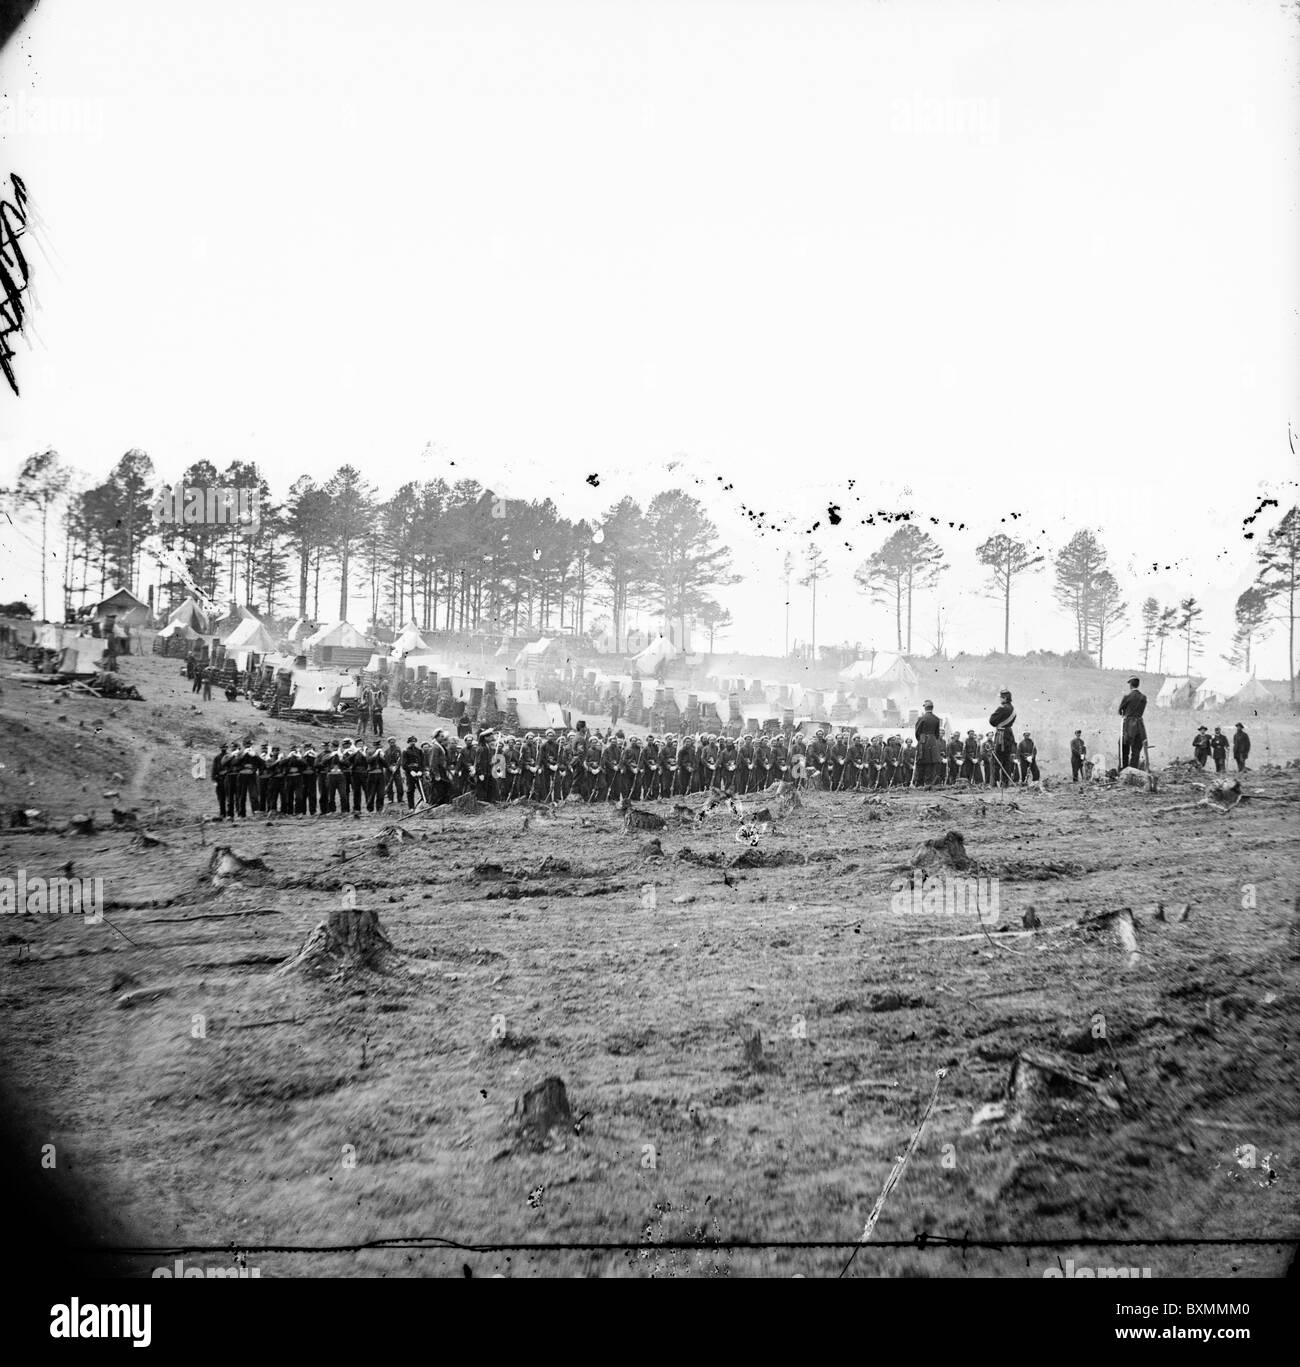 Brandy Station, Virginia. Headquarters, Army of the Potomac. Company of Zouaves in foreground - Stock Image